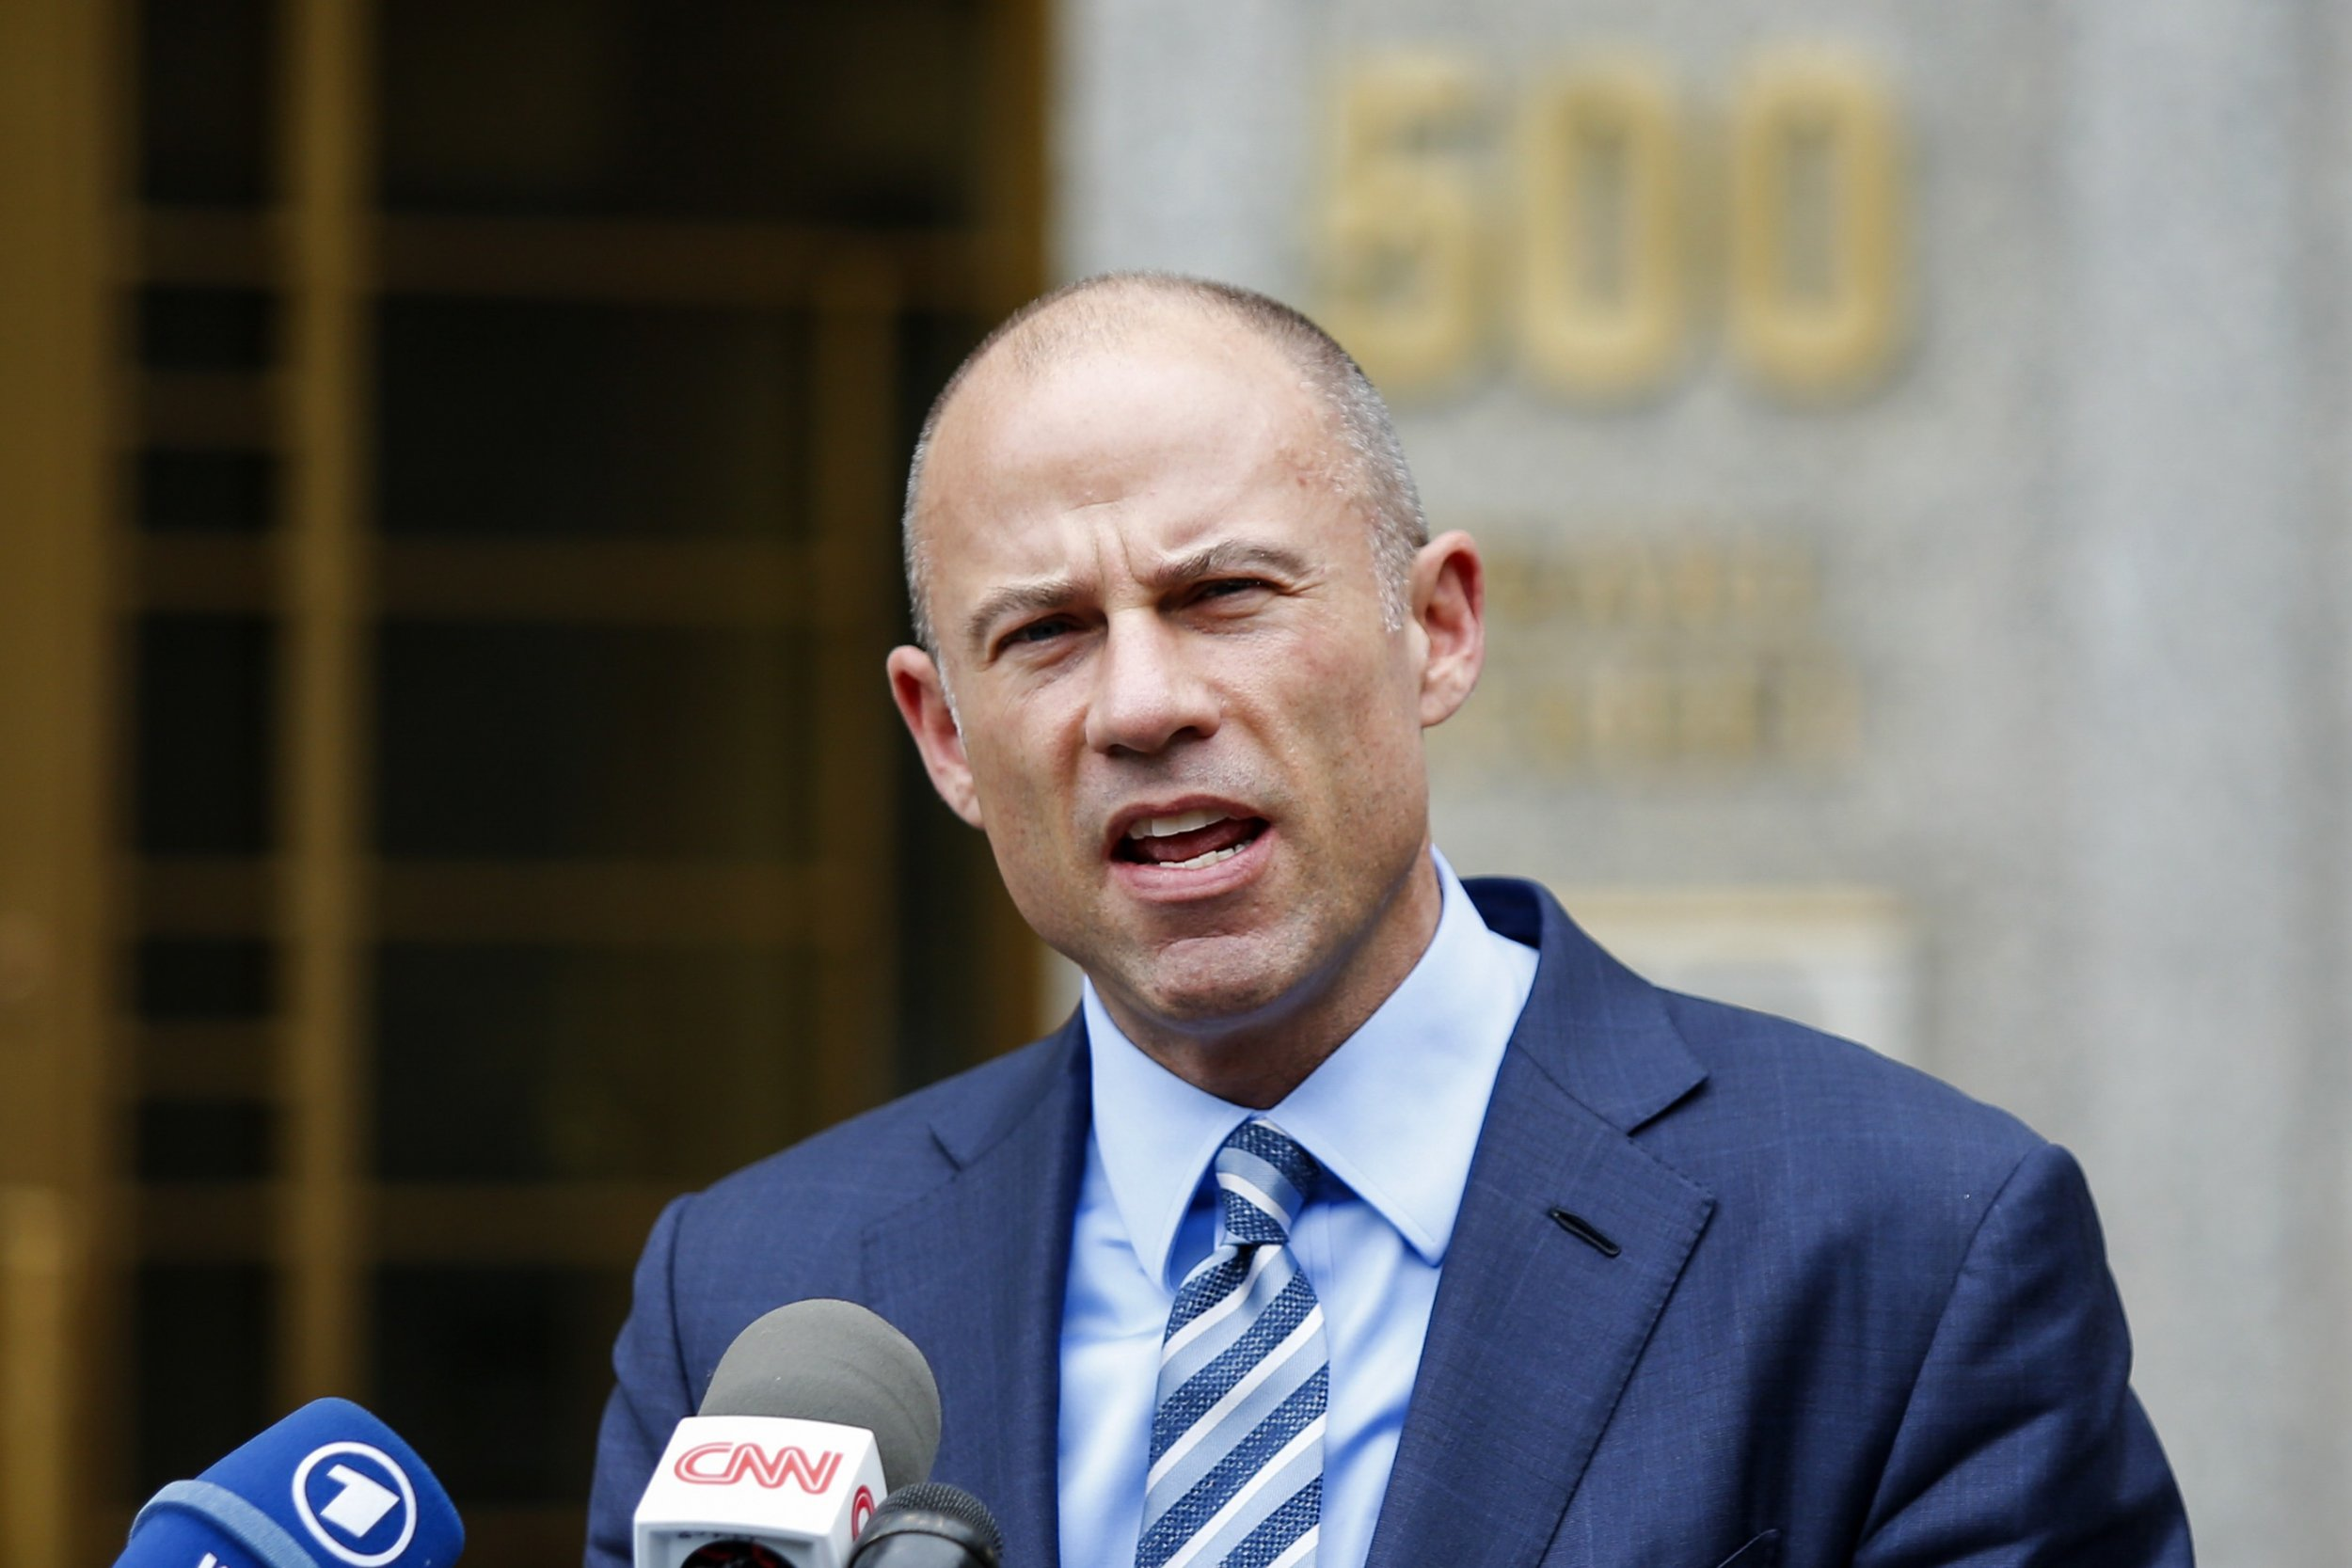 avenatti, sanders, trump, wrath, enemy